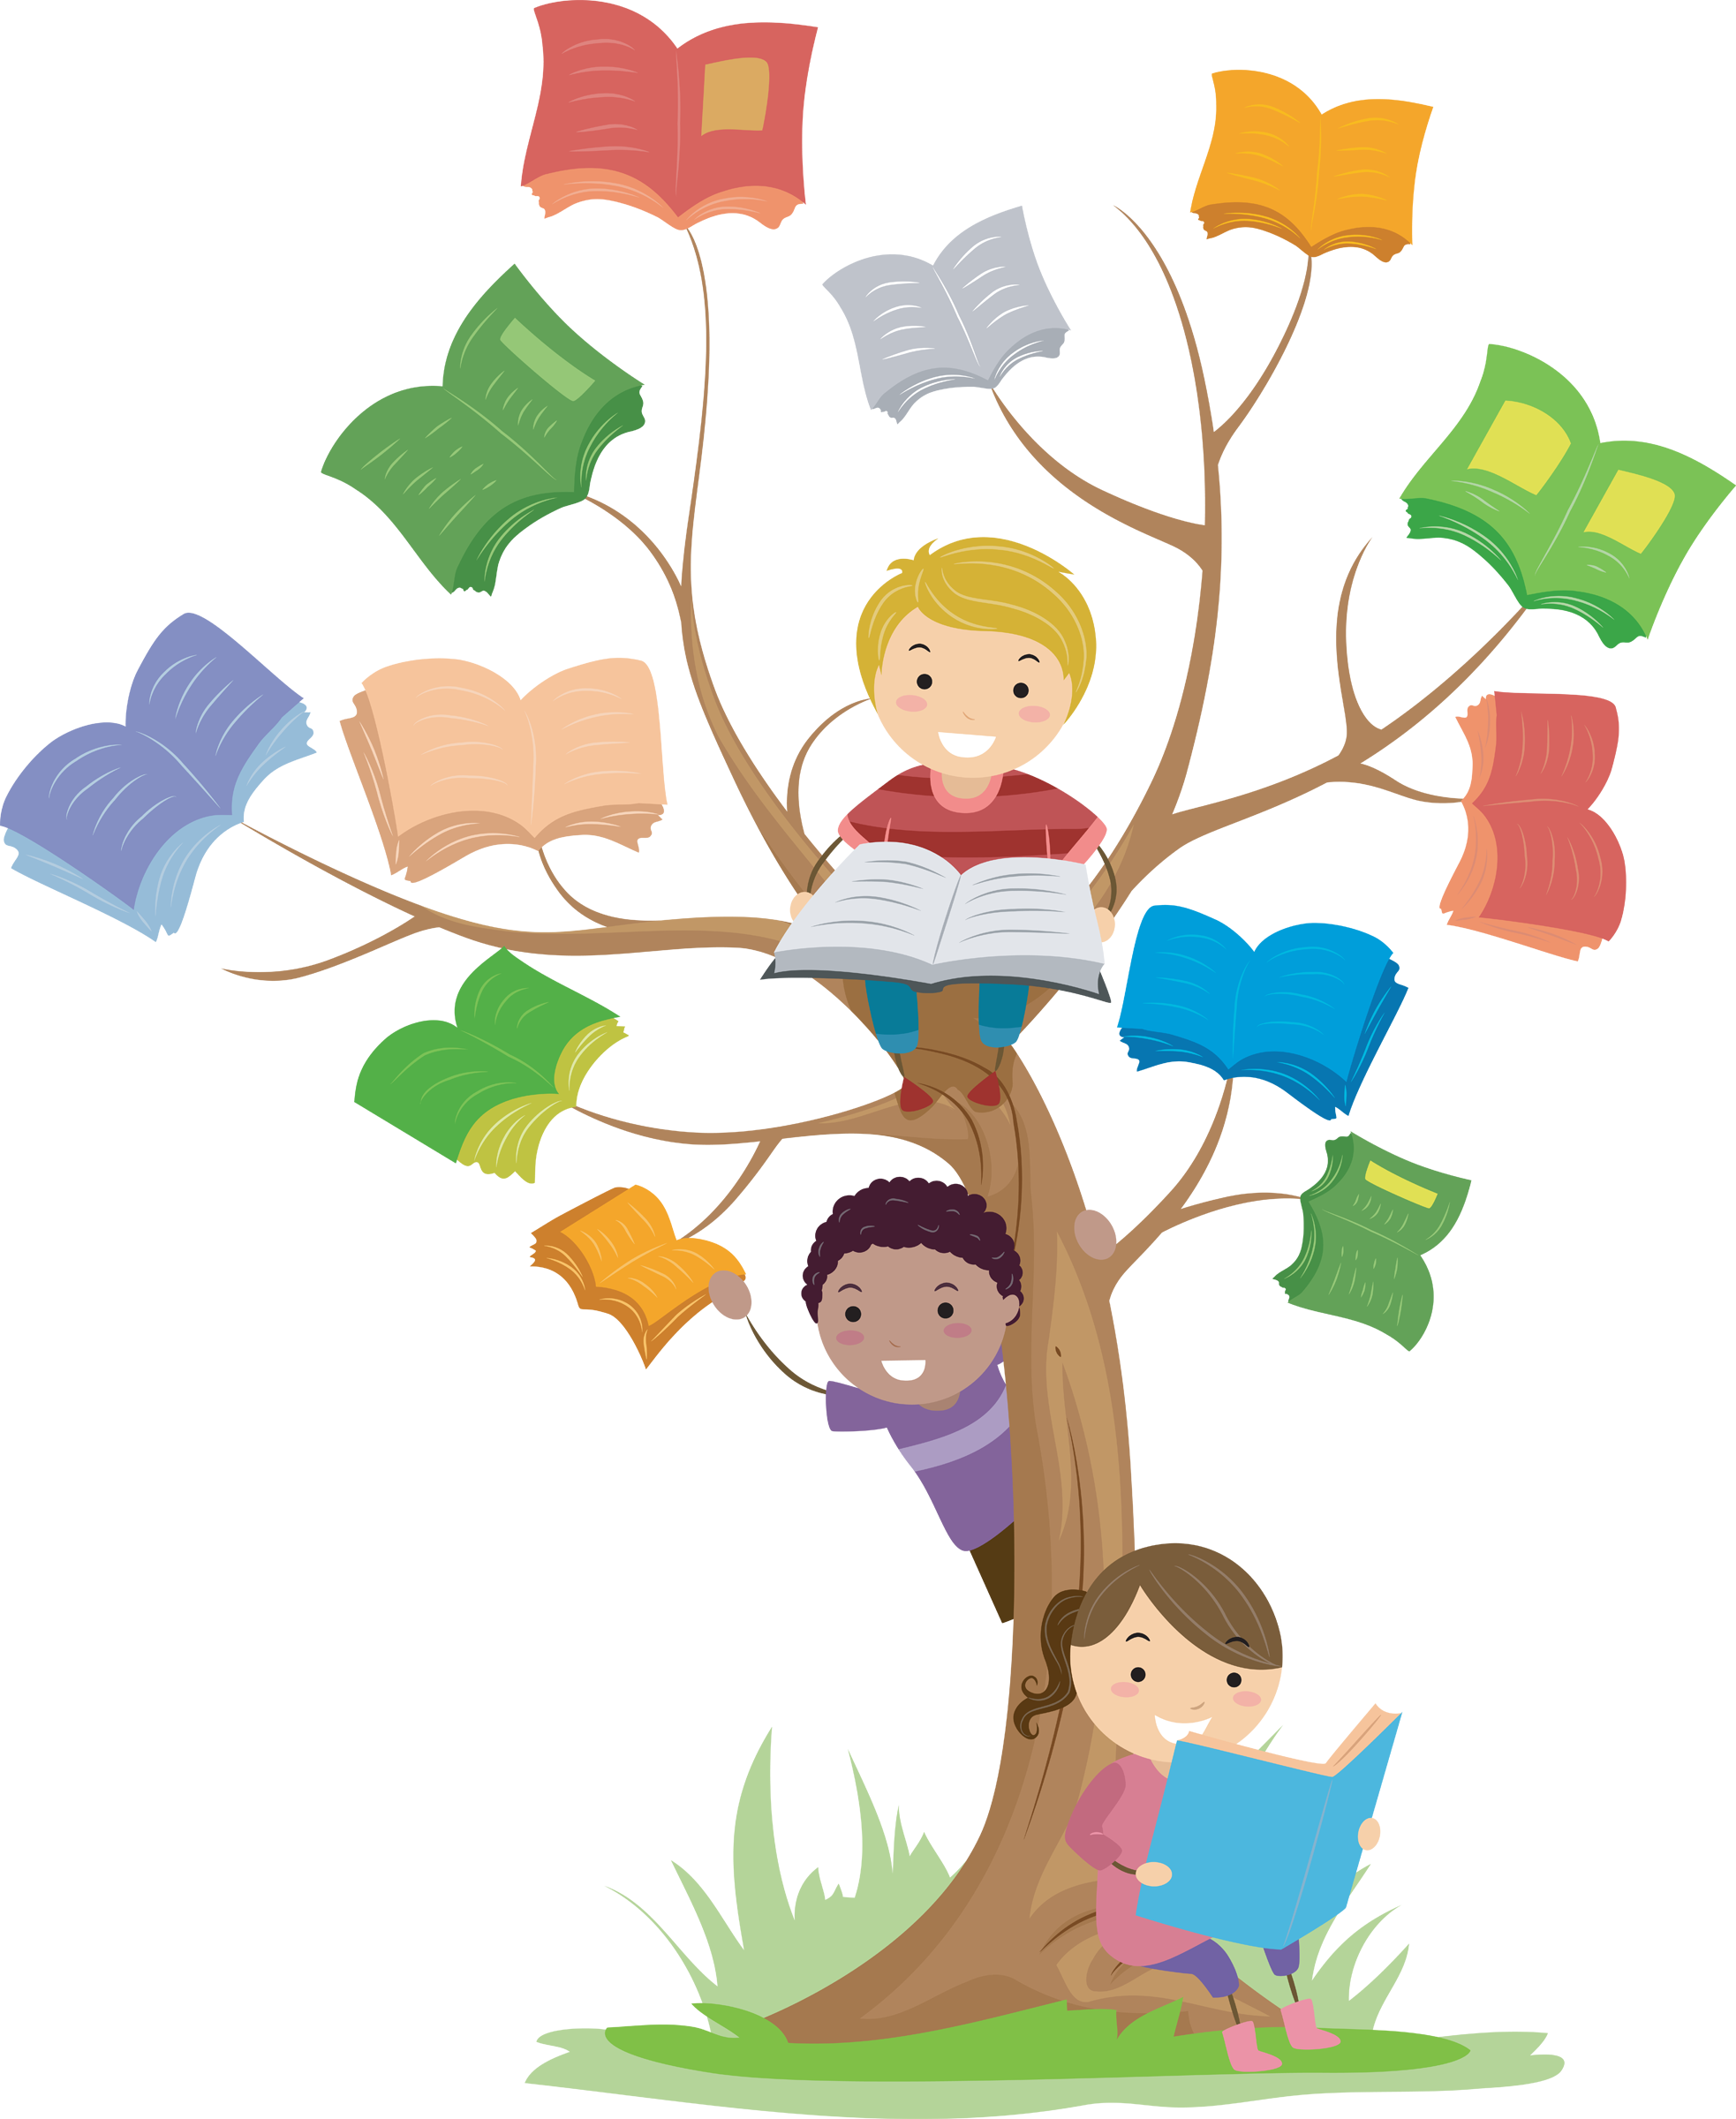 Download Kids Learning File Hq Png Image Freepngimg